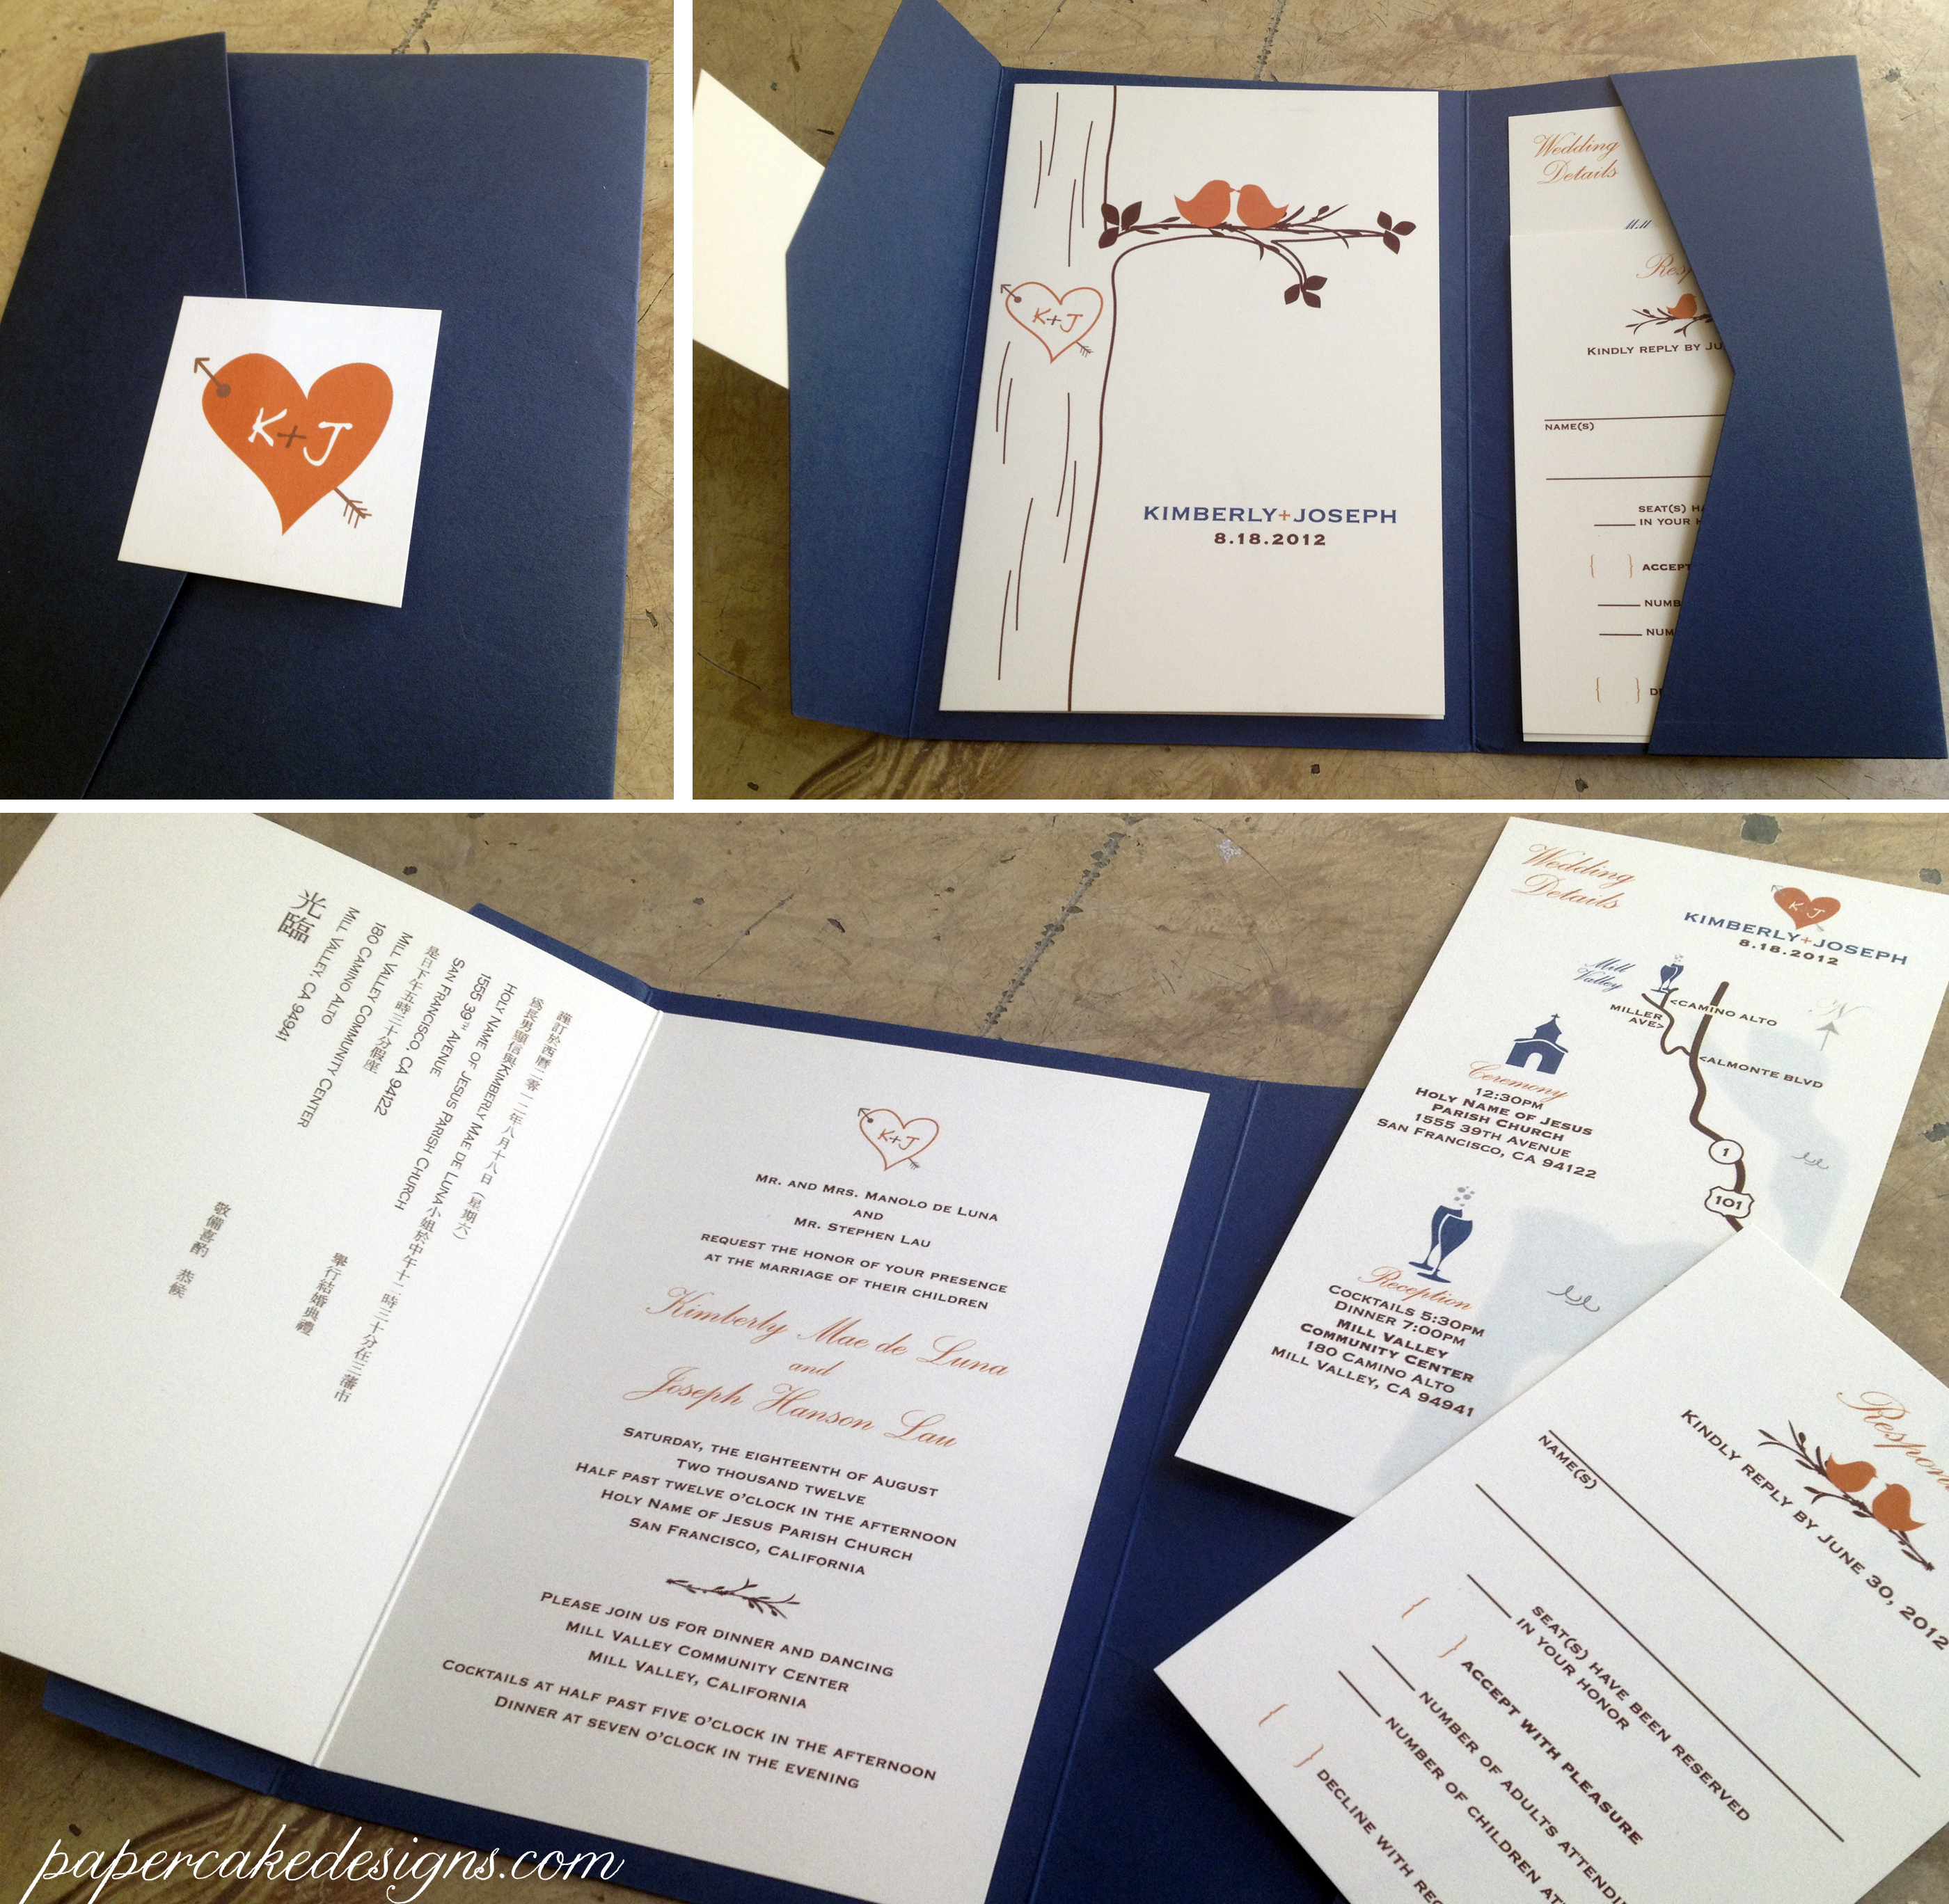 Diy invite boatremyeaton diy invite solutioingenieria Images